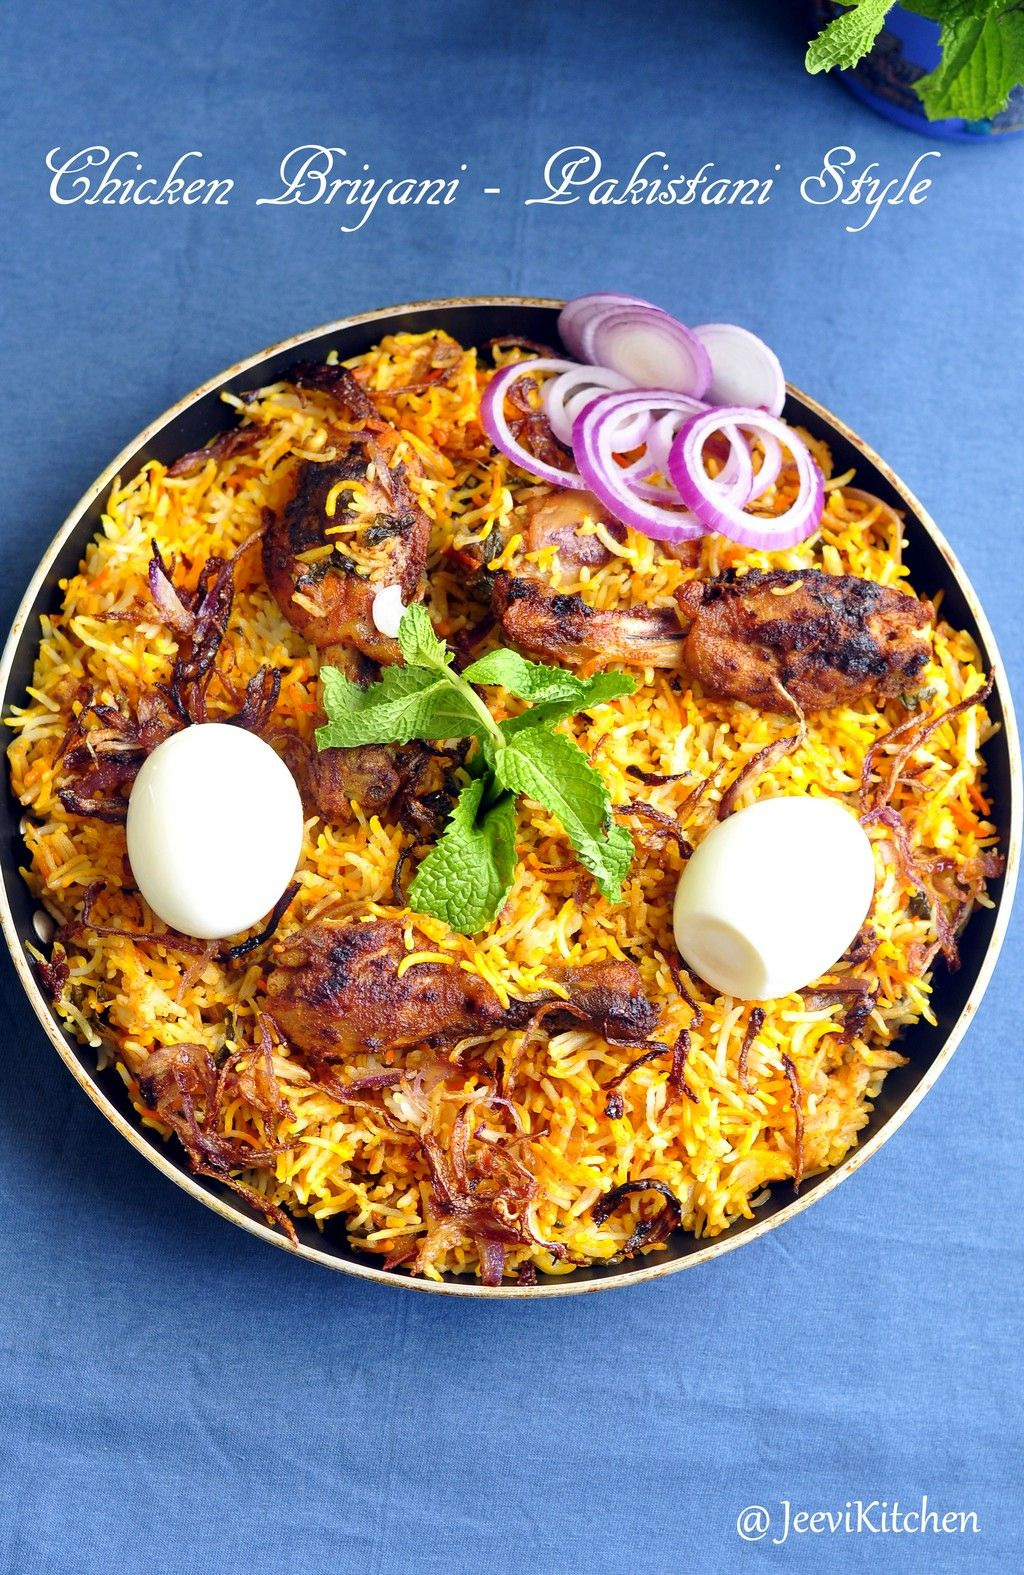 Jeevi kitchen chicken briyani pakistani style pakistani food jeevi kitchen chicken briyani pakistani style forumfinder Gallery